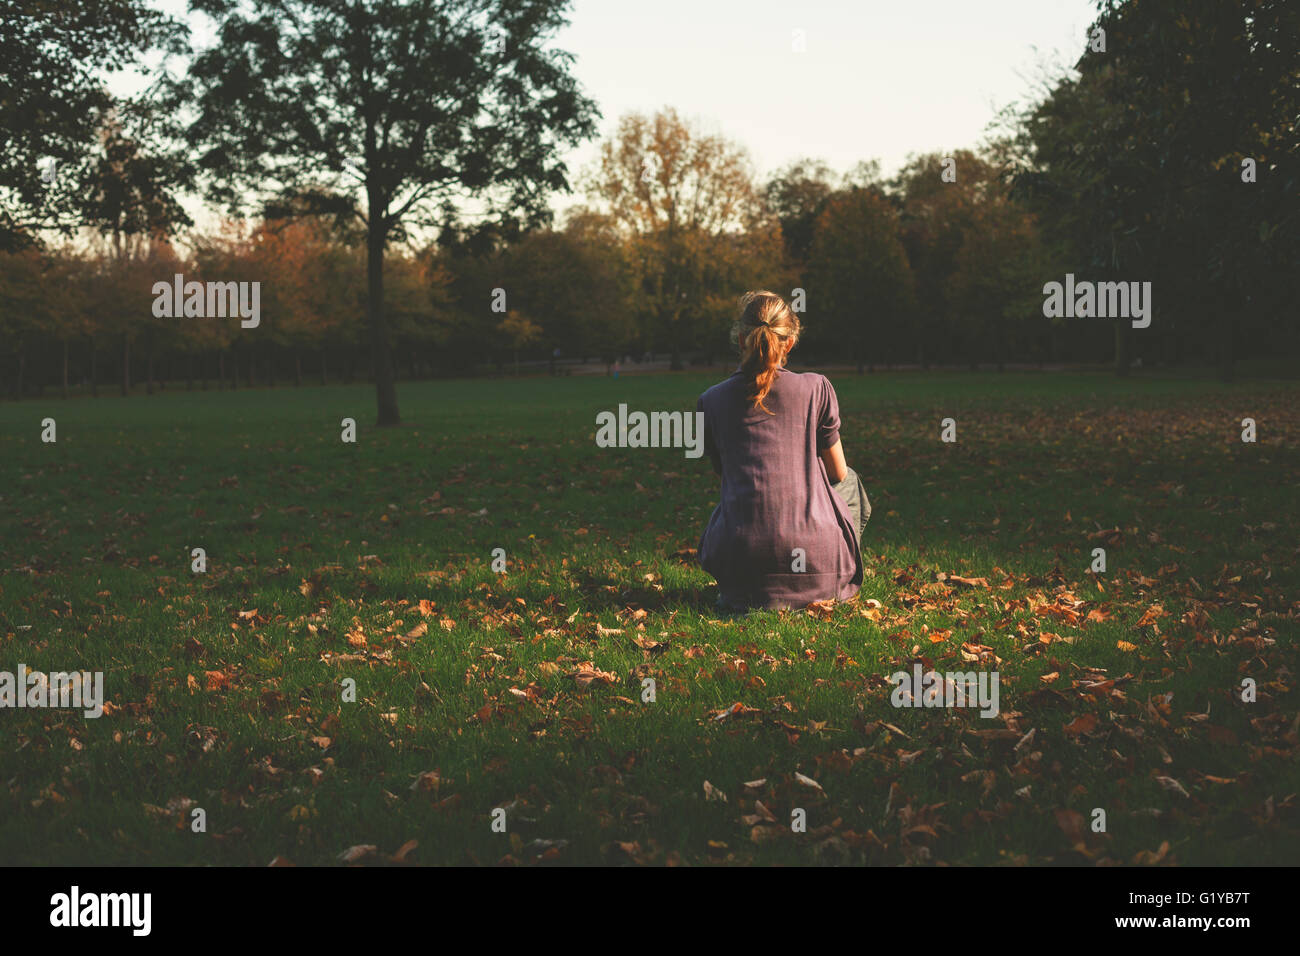 A young woman is siting on the grass in the park in the evening Stock Photo